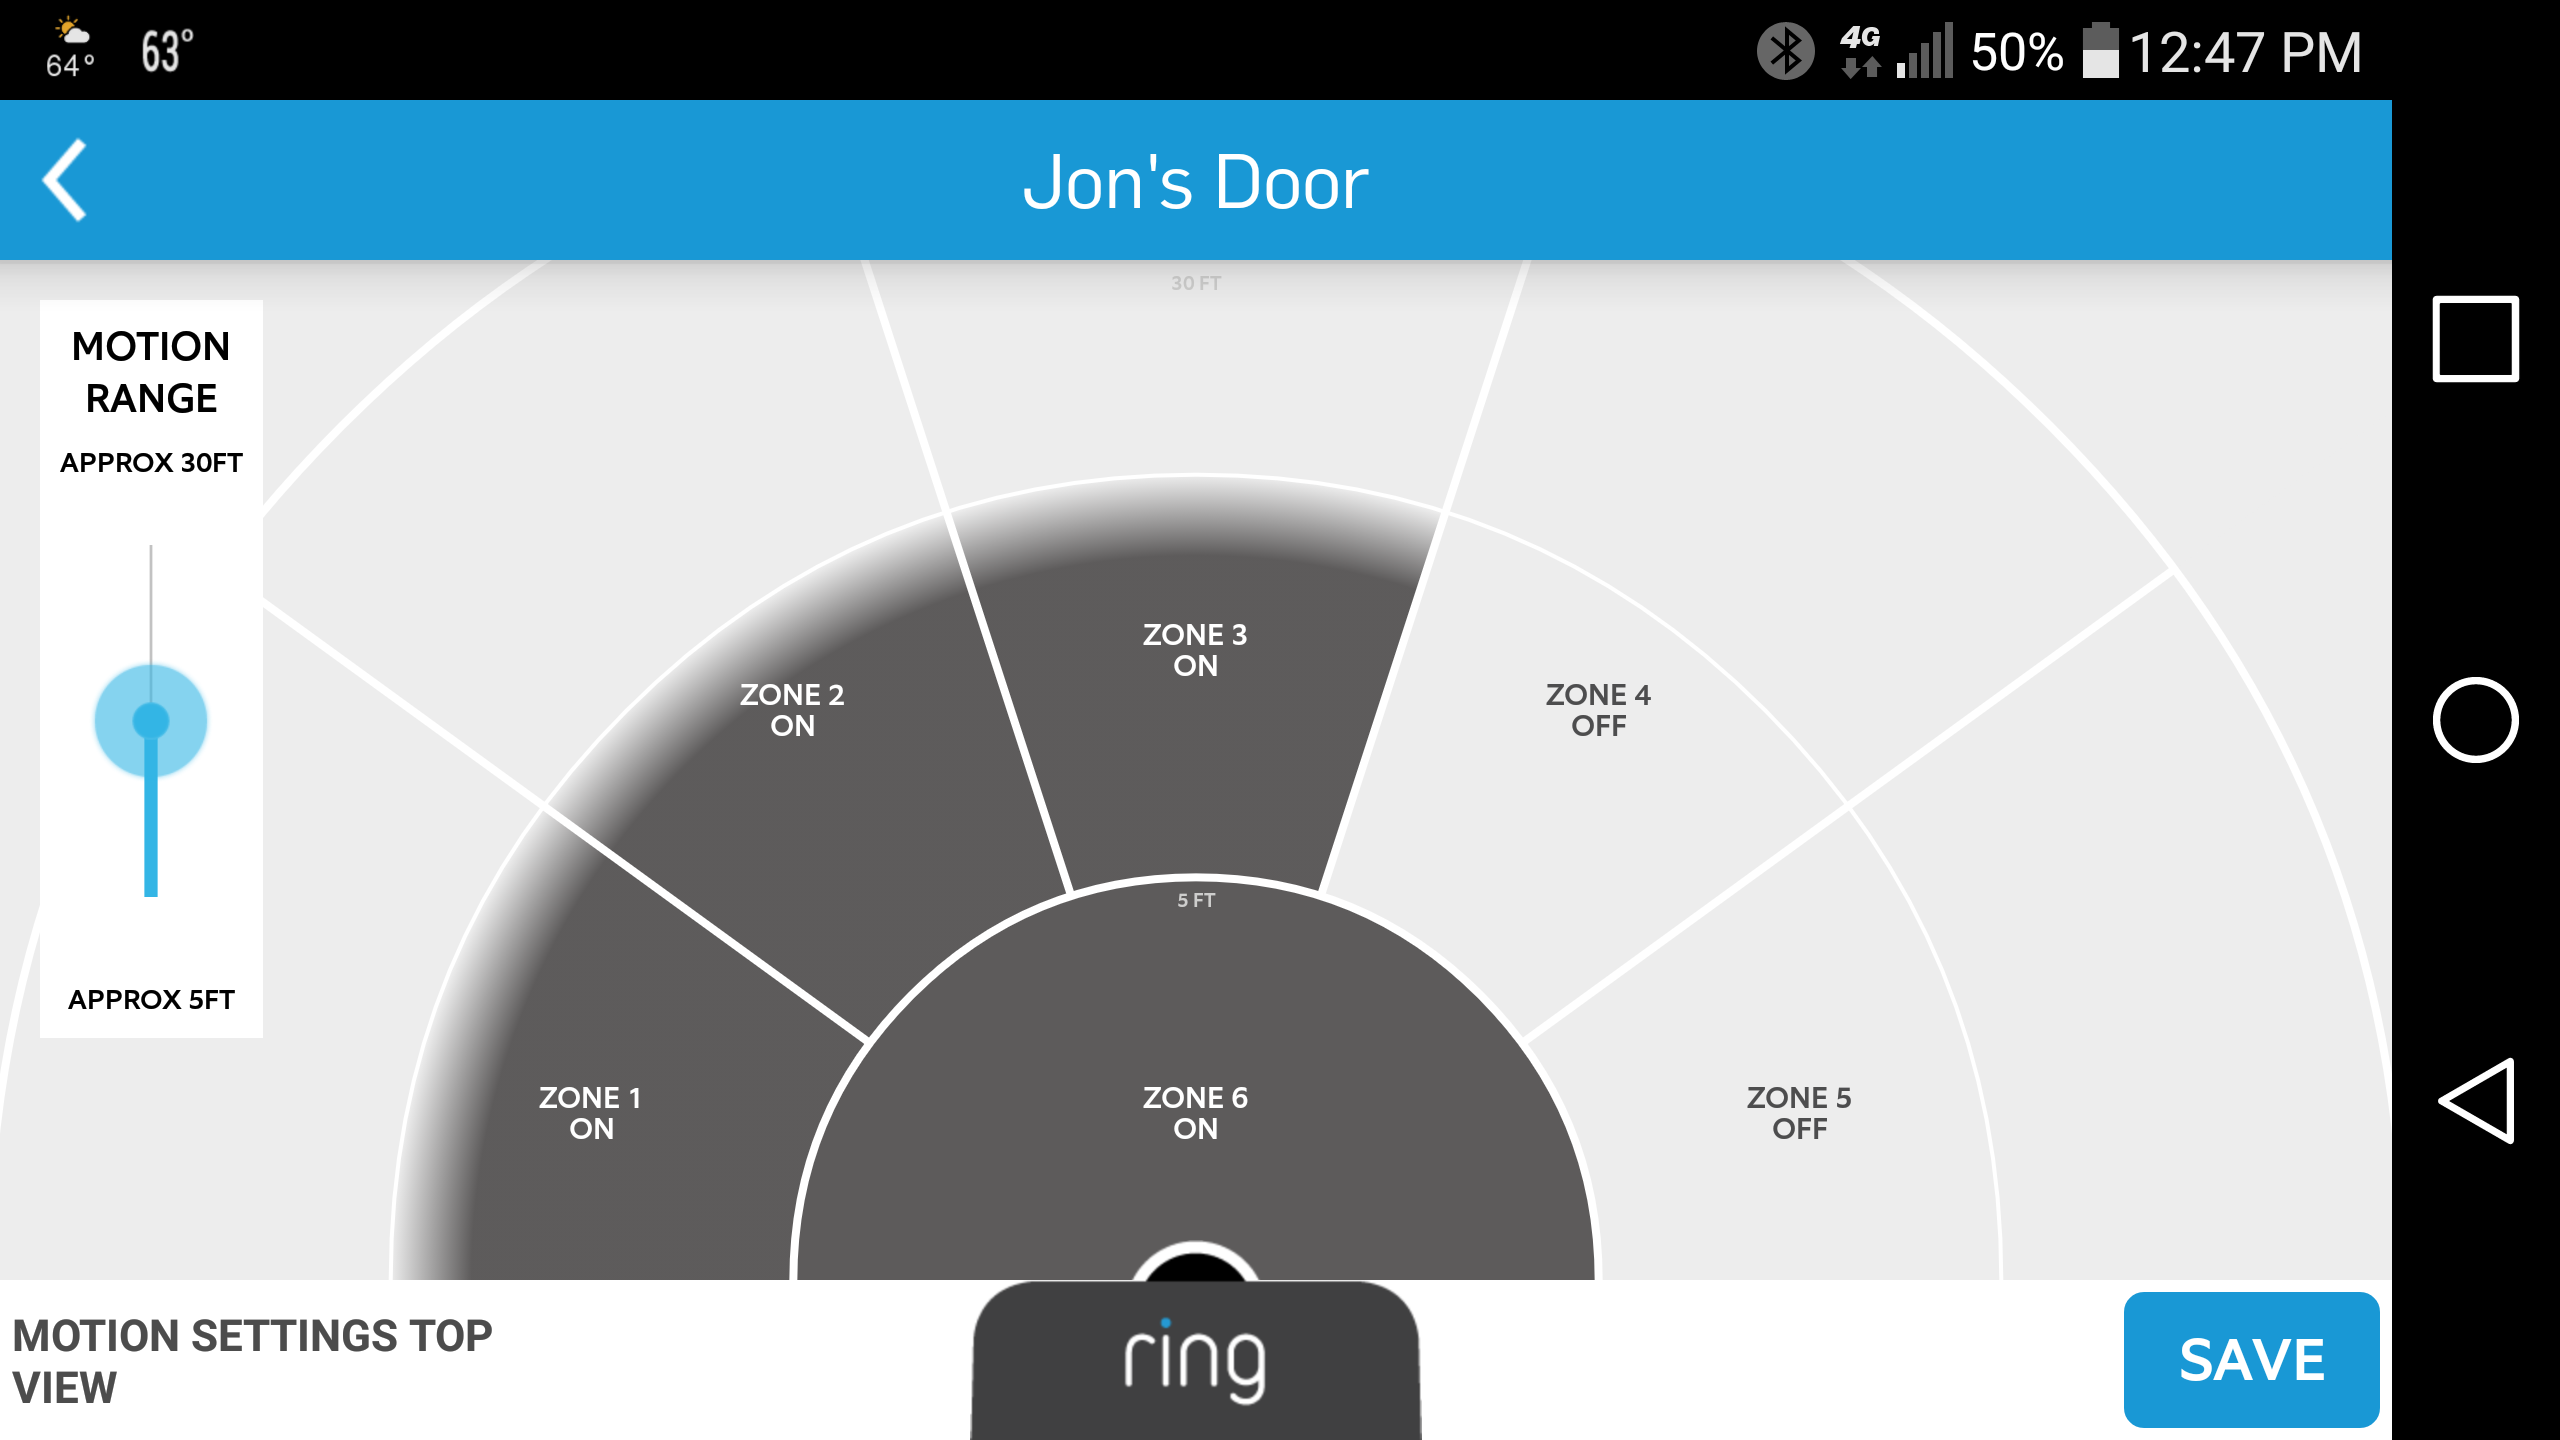 Ring Video Doorbell Review This Gadget Makes Crooks Think Youre In Wall Wiring Kit For Tv Mount Addition Pro Its Important To Fine Tune Motion Detection Zones As Feature Is Very Sensitive